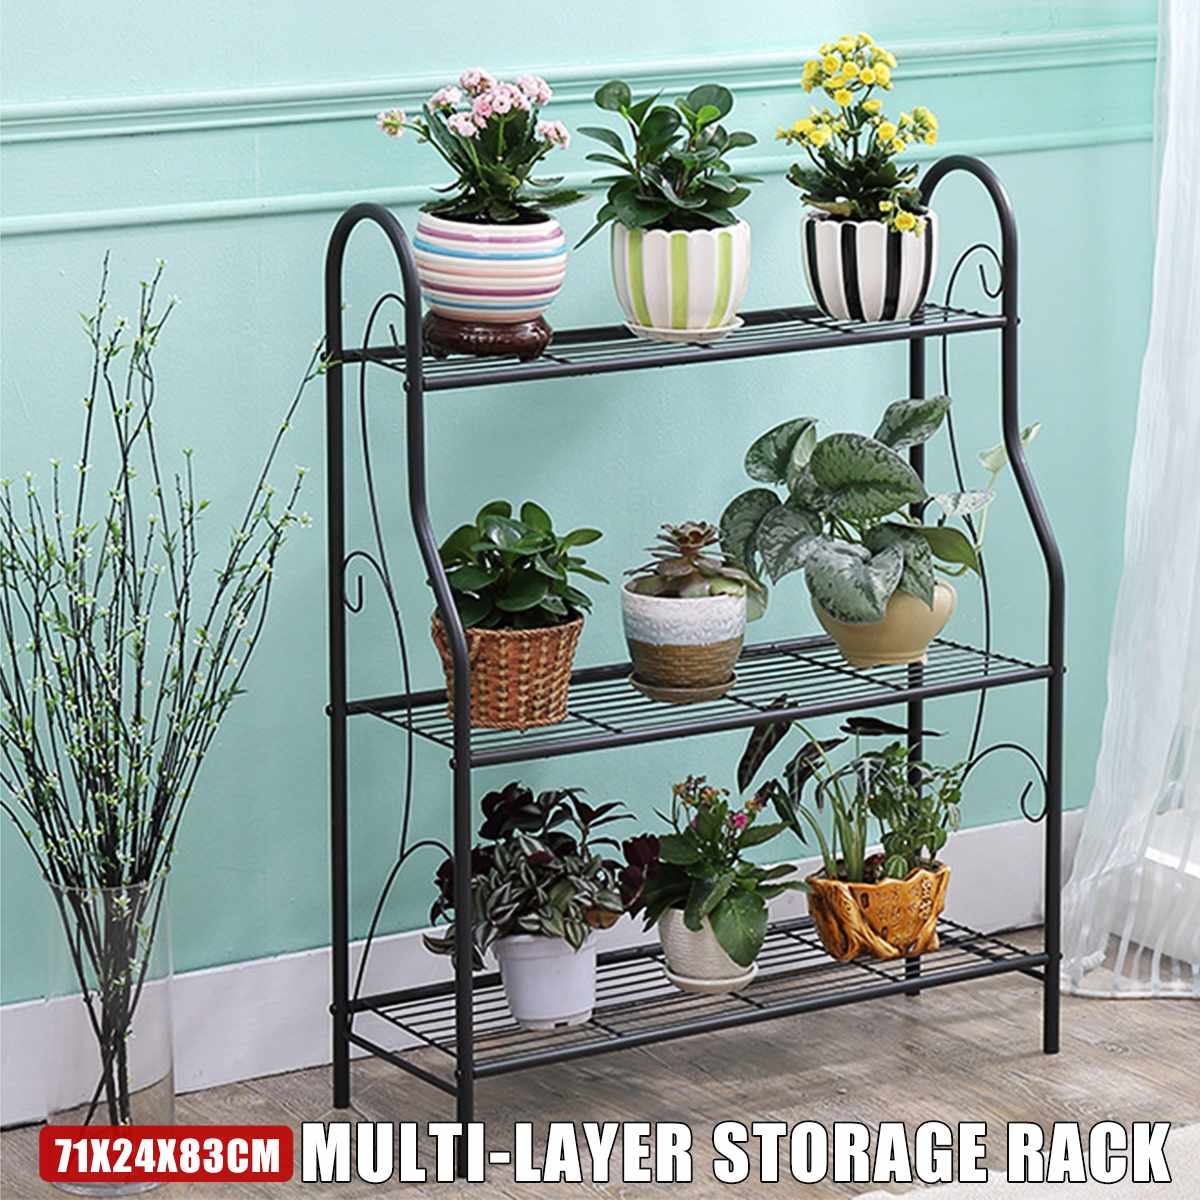 3 Layers Iron Outdoor Garden Plant Shelves Storage Shelf Simple Assembly Removable Bedroom Flower Pot Iron Rack For Balcony